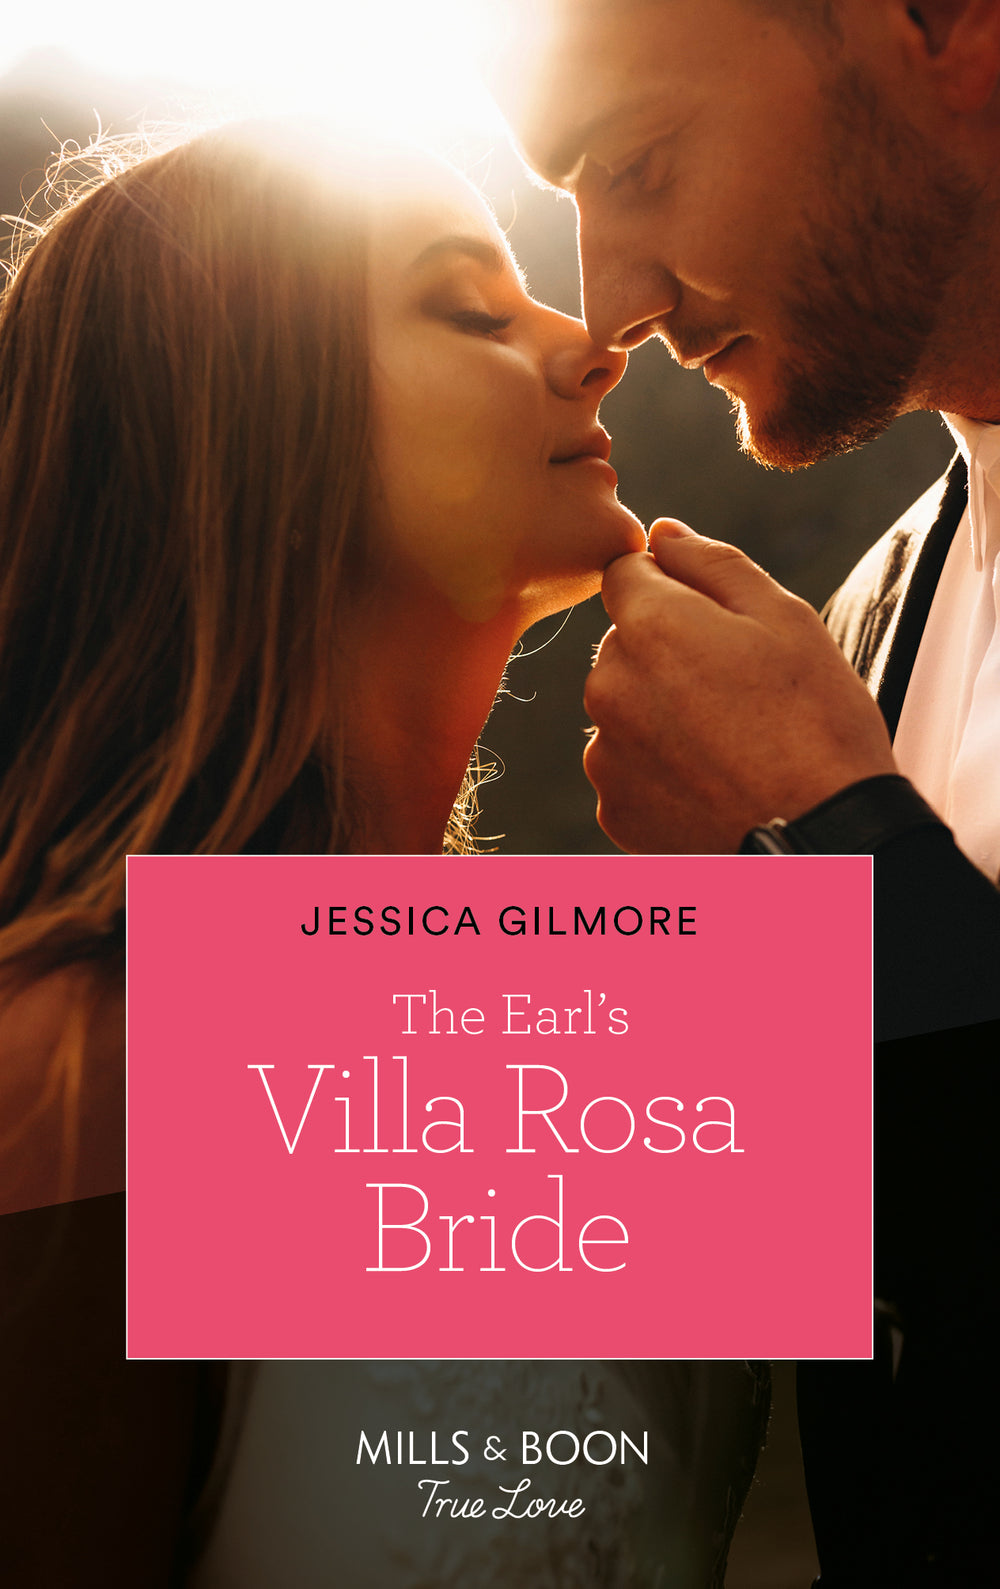 The Earl's Villa Rosa Bride